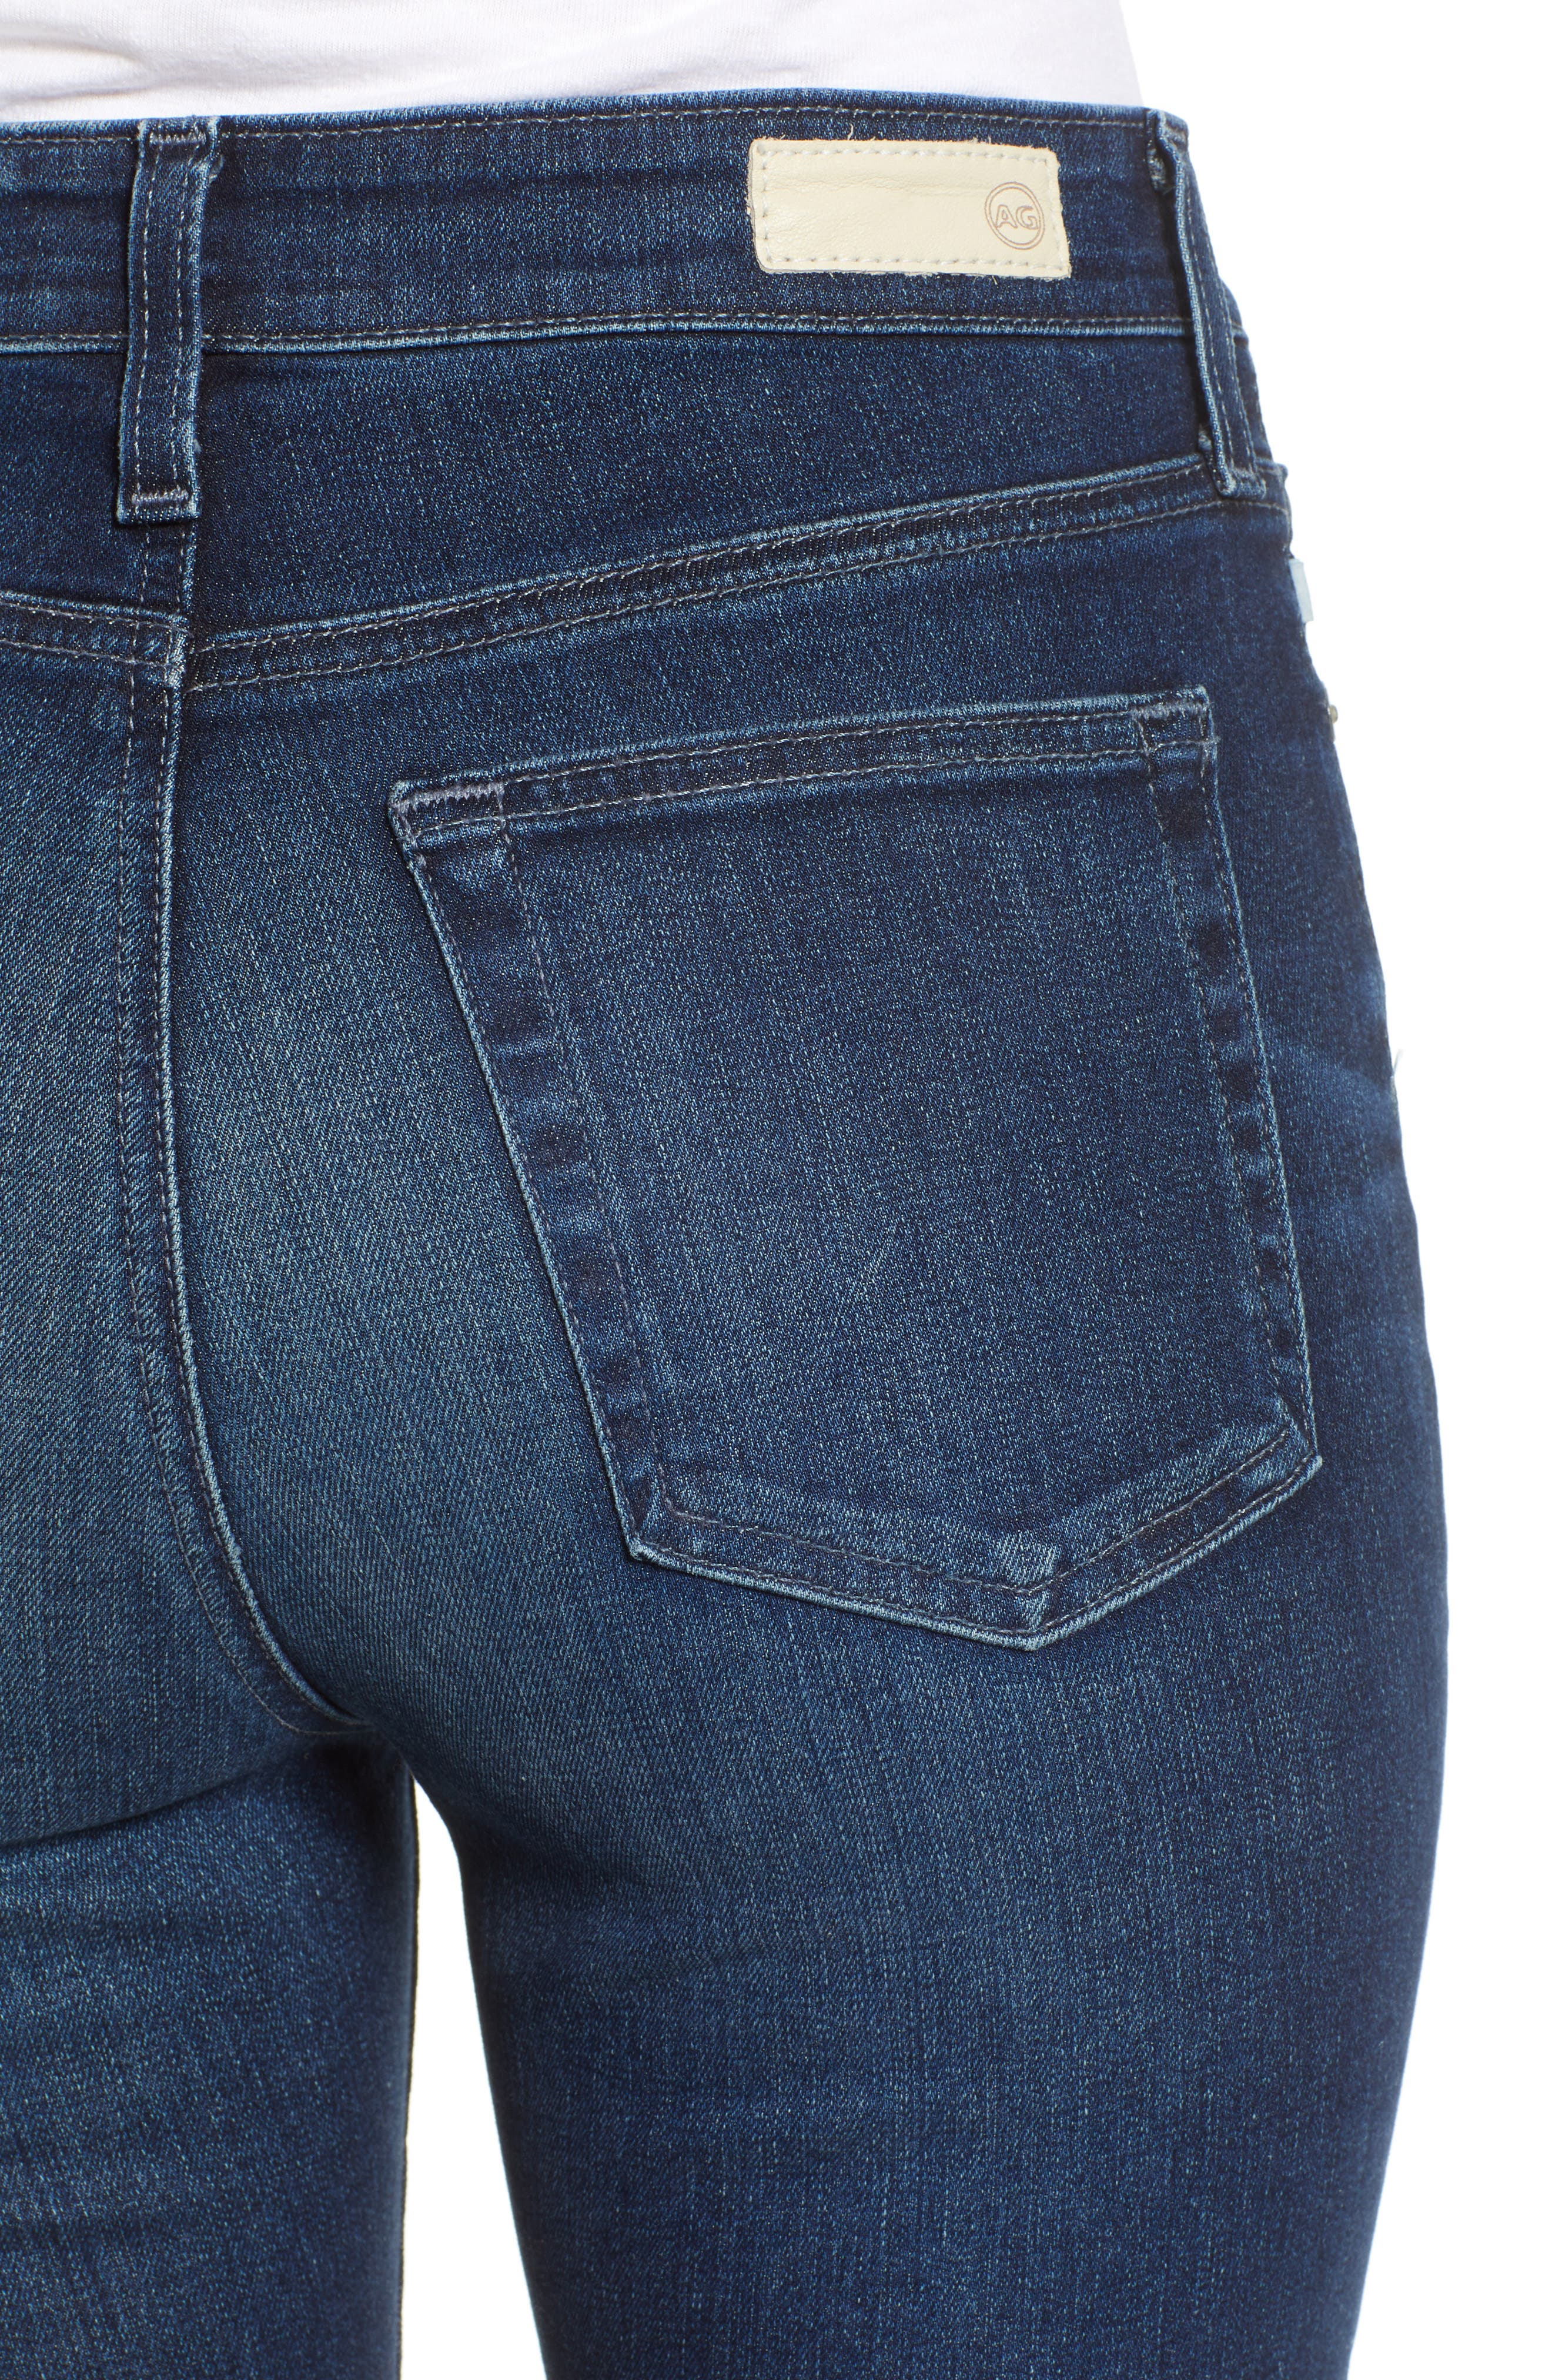 Mila Ankle Skinny Jeans,                             Alternate thumbnail 4, color,                             4 Years Deep Willows